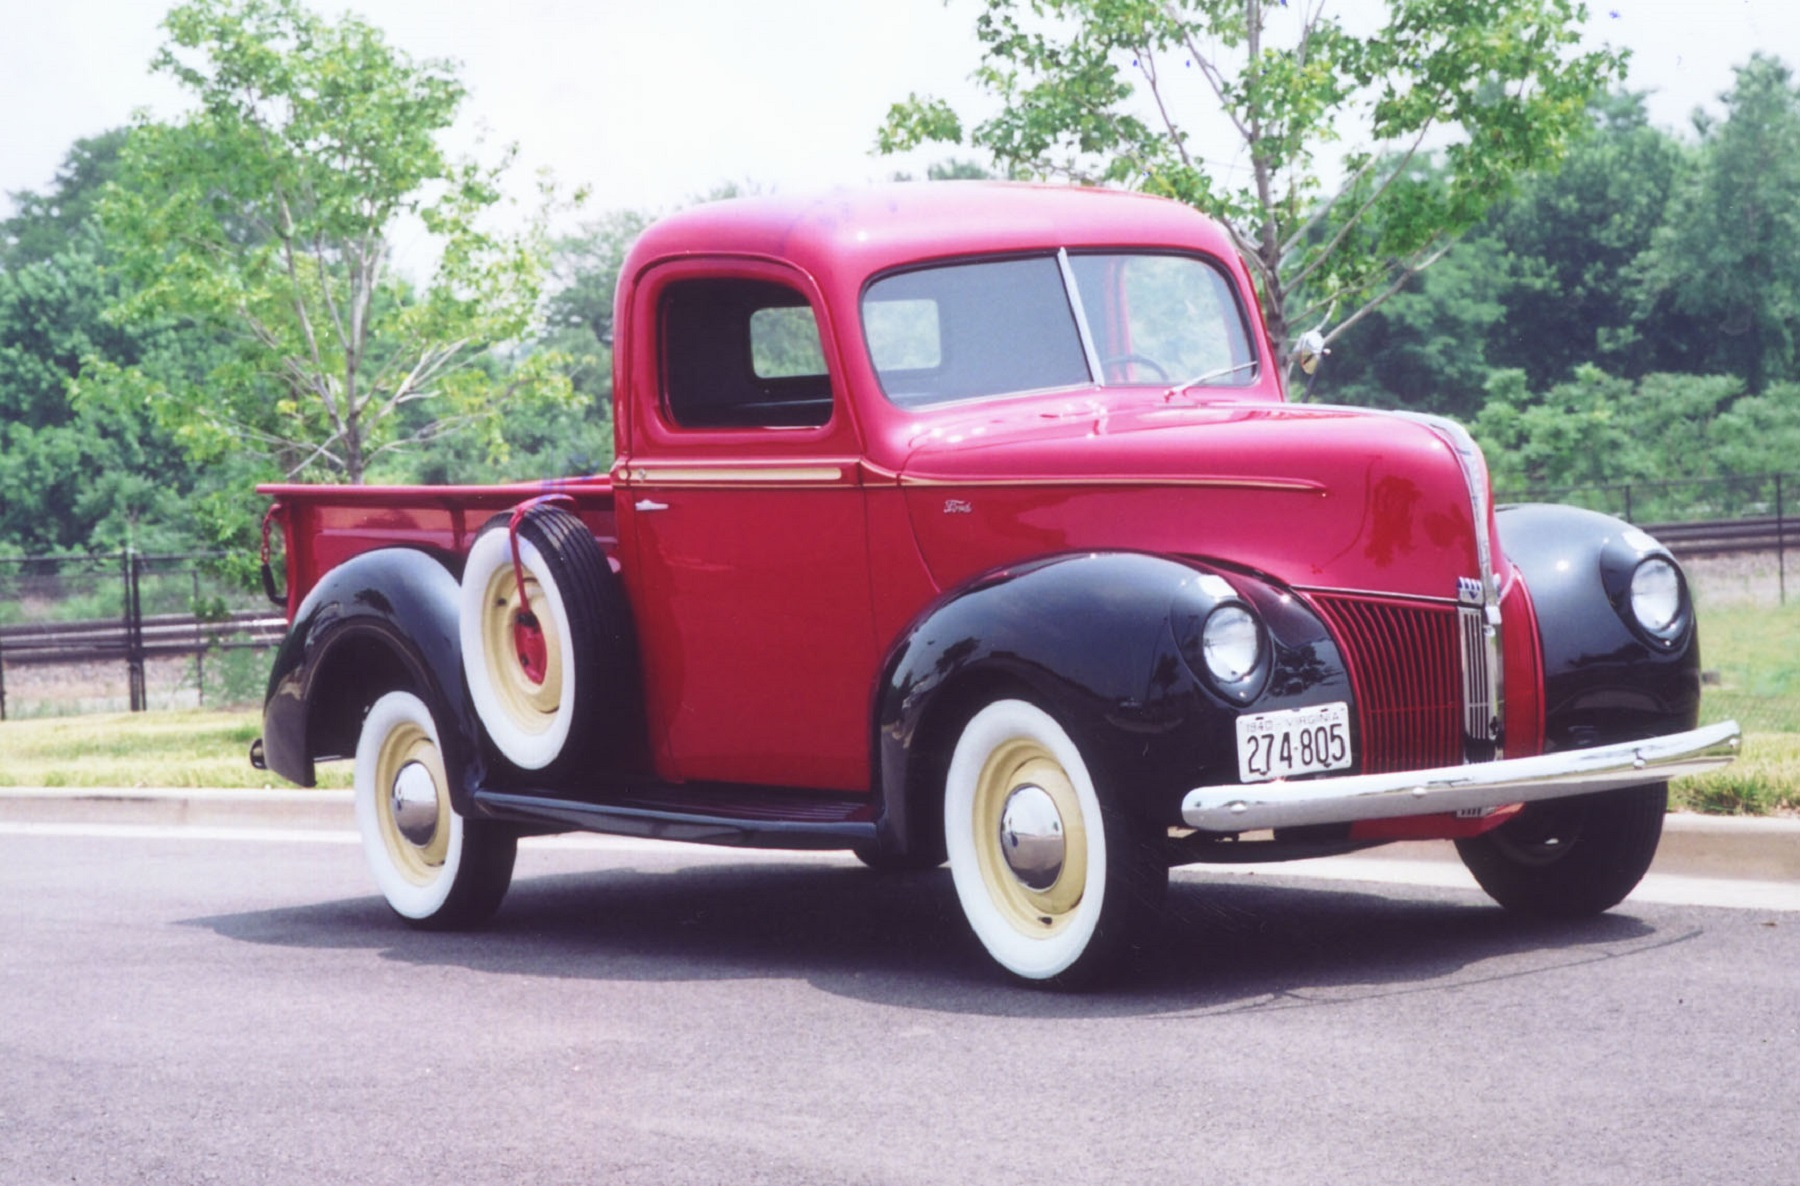 1940 Ford Pickup Truck: Received the Dearborn Award - Classic ...